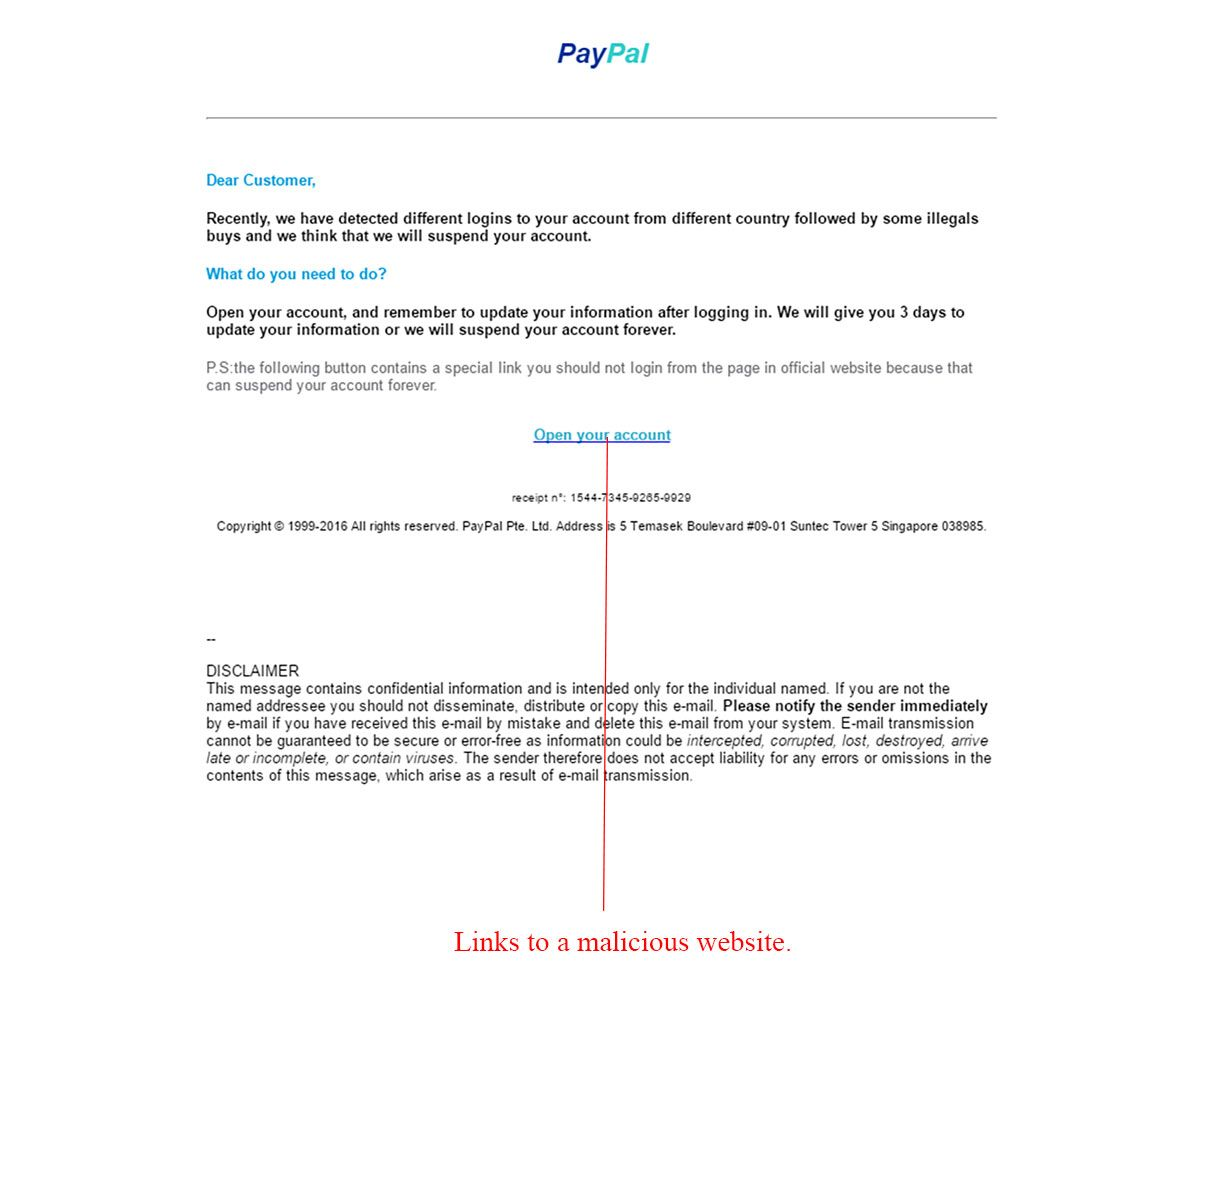 PayPal Account Update Email Scam - http://www.mailshark.com.au/recent-security-news/paypal-account-update-email-scam-24291